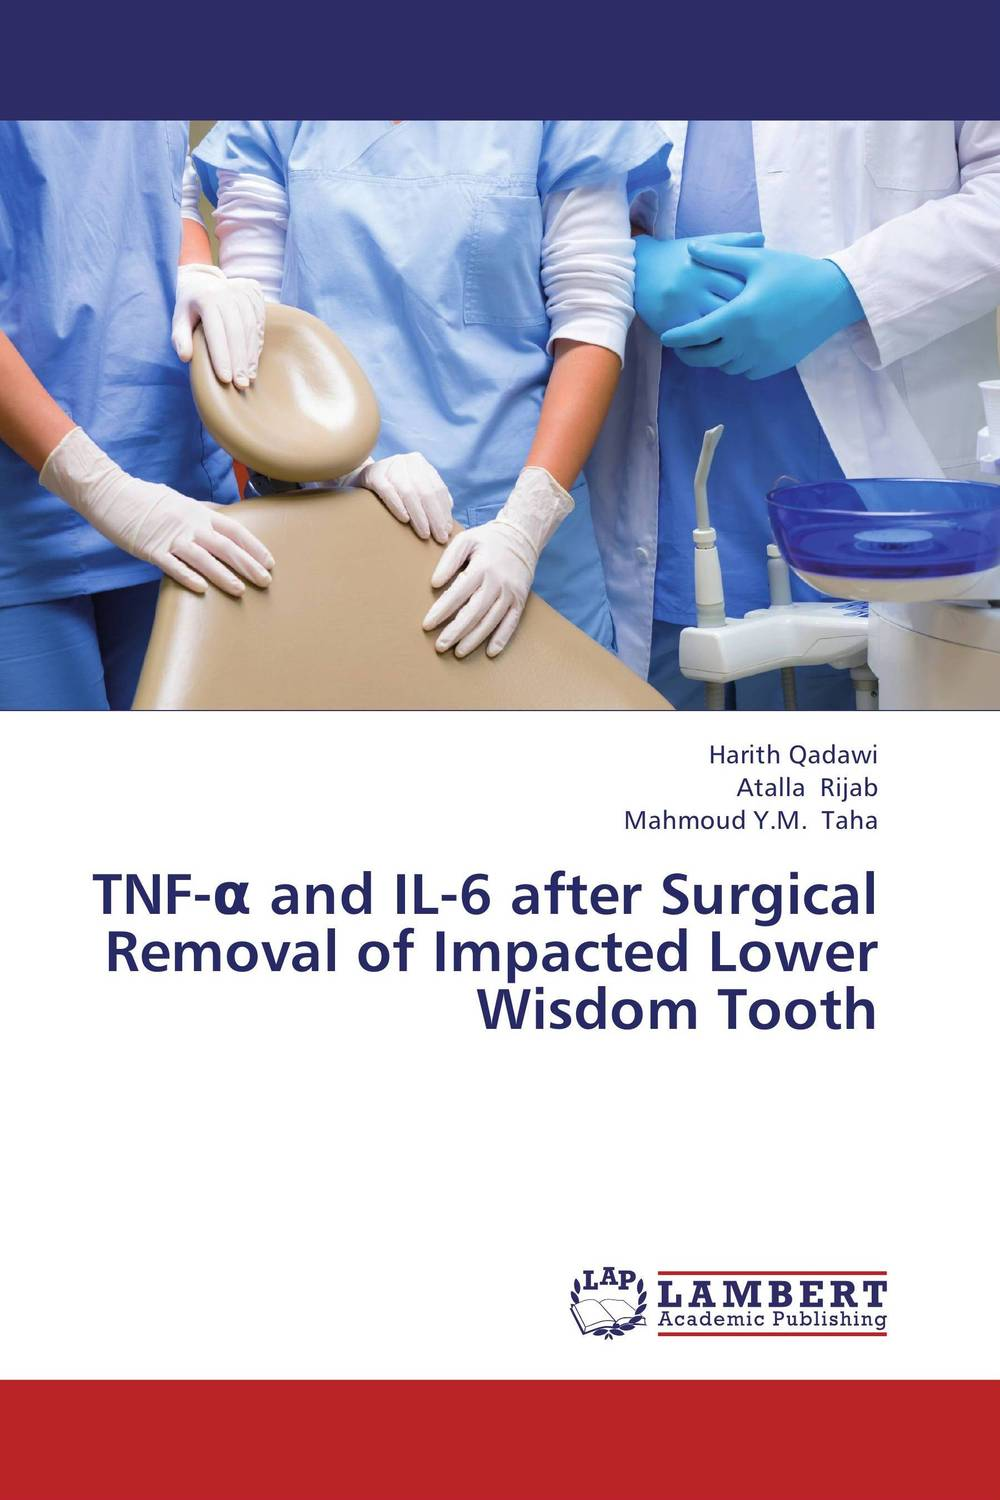 TNF-? and IL-6 after Surgical Removal of Impacted Lower Wisdom Tooth seeing things as they are